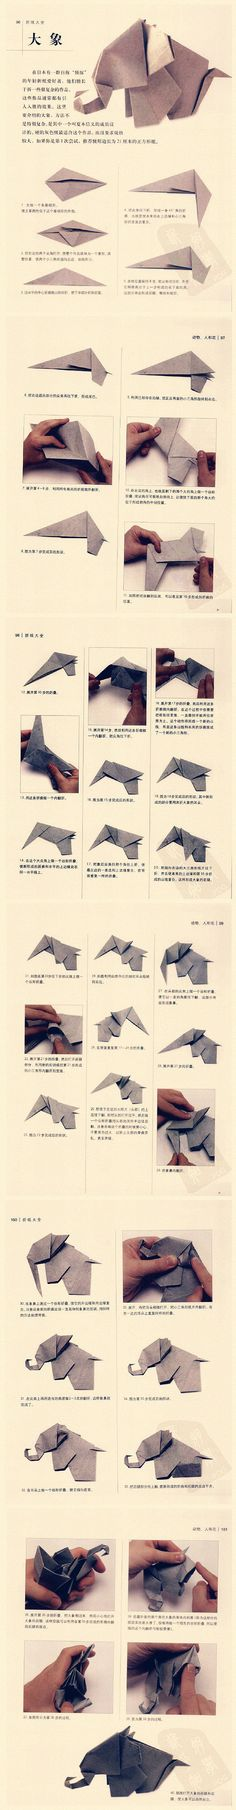 Origami elephant photo instructions.                                                                                                                                                                                 More